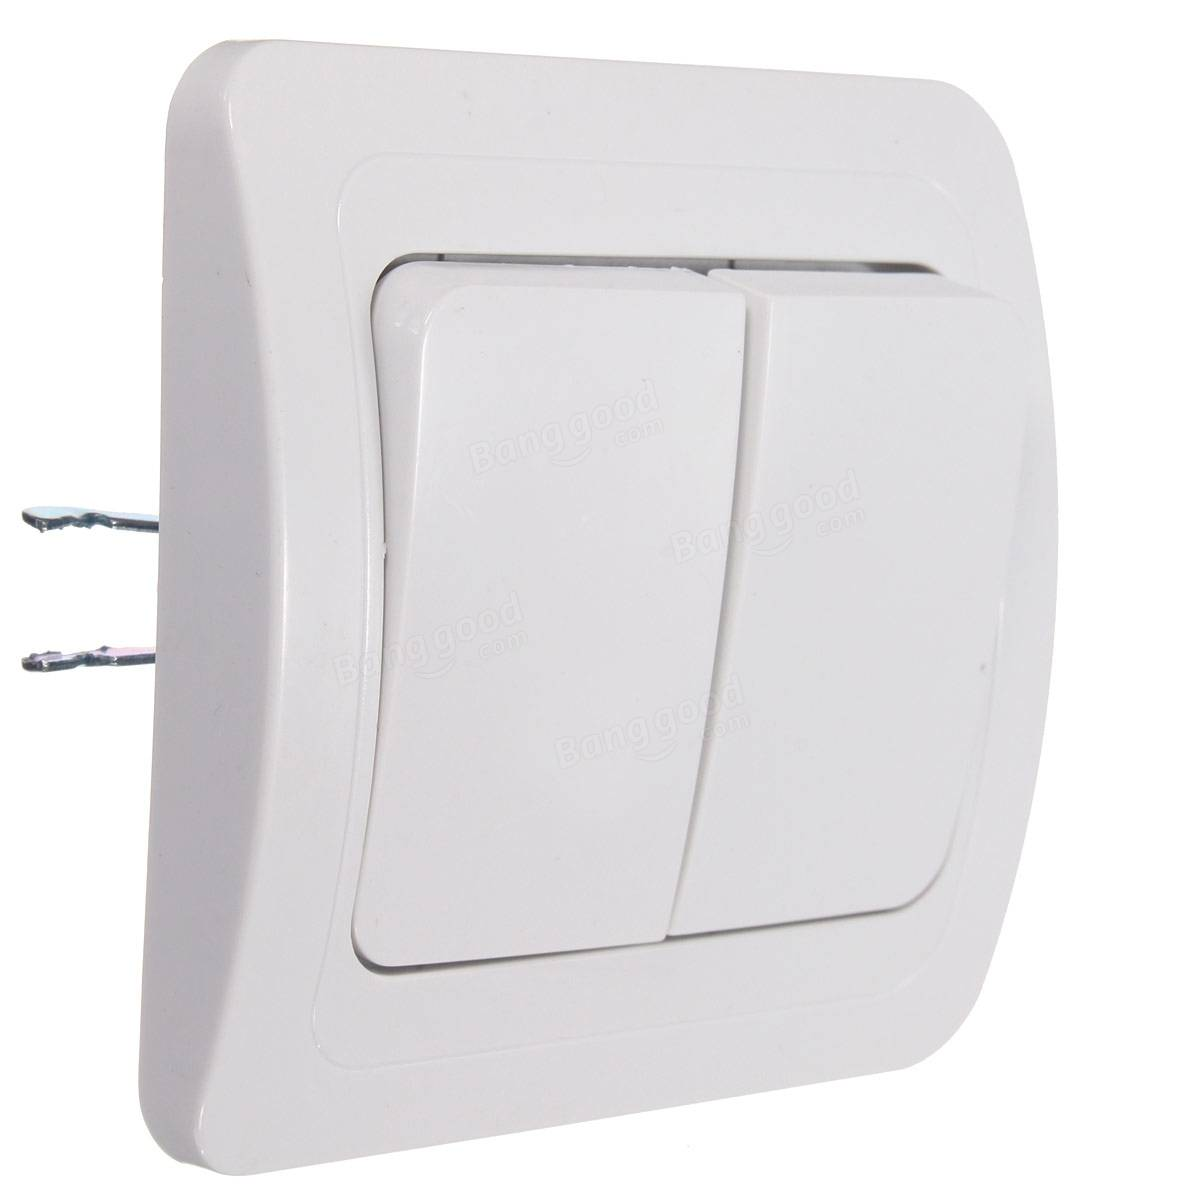 push button 2 gang 1 way controller dimmer wall socket panel light lamp  switch Sale - Banggood.com sold out